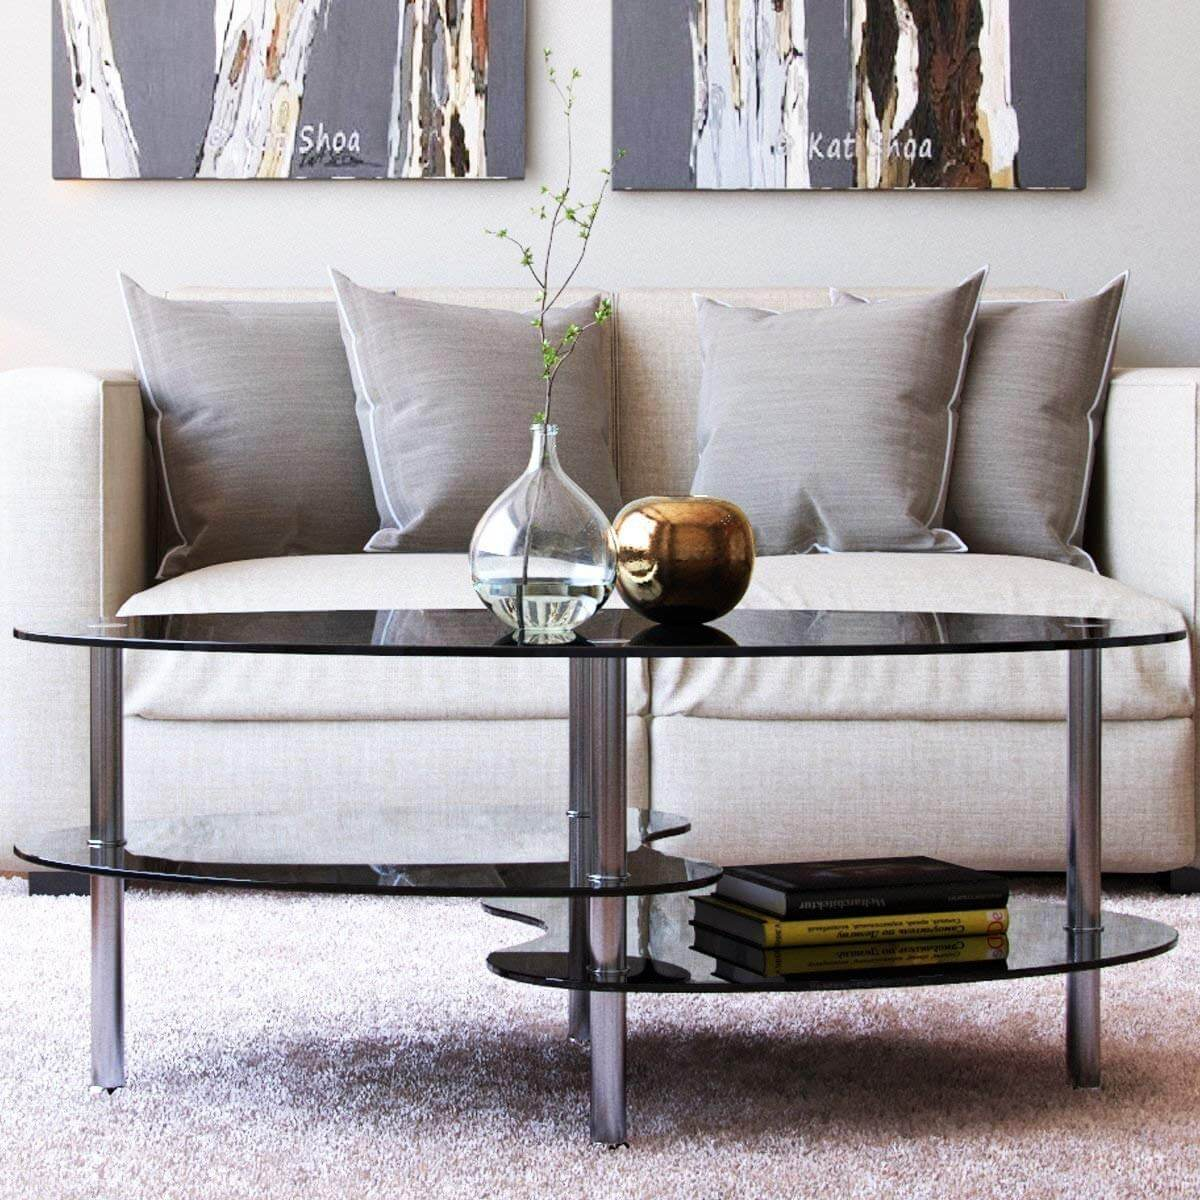 Space-Age Glass Table With Steel Legs